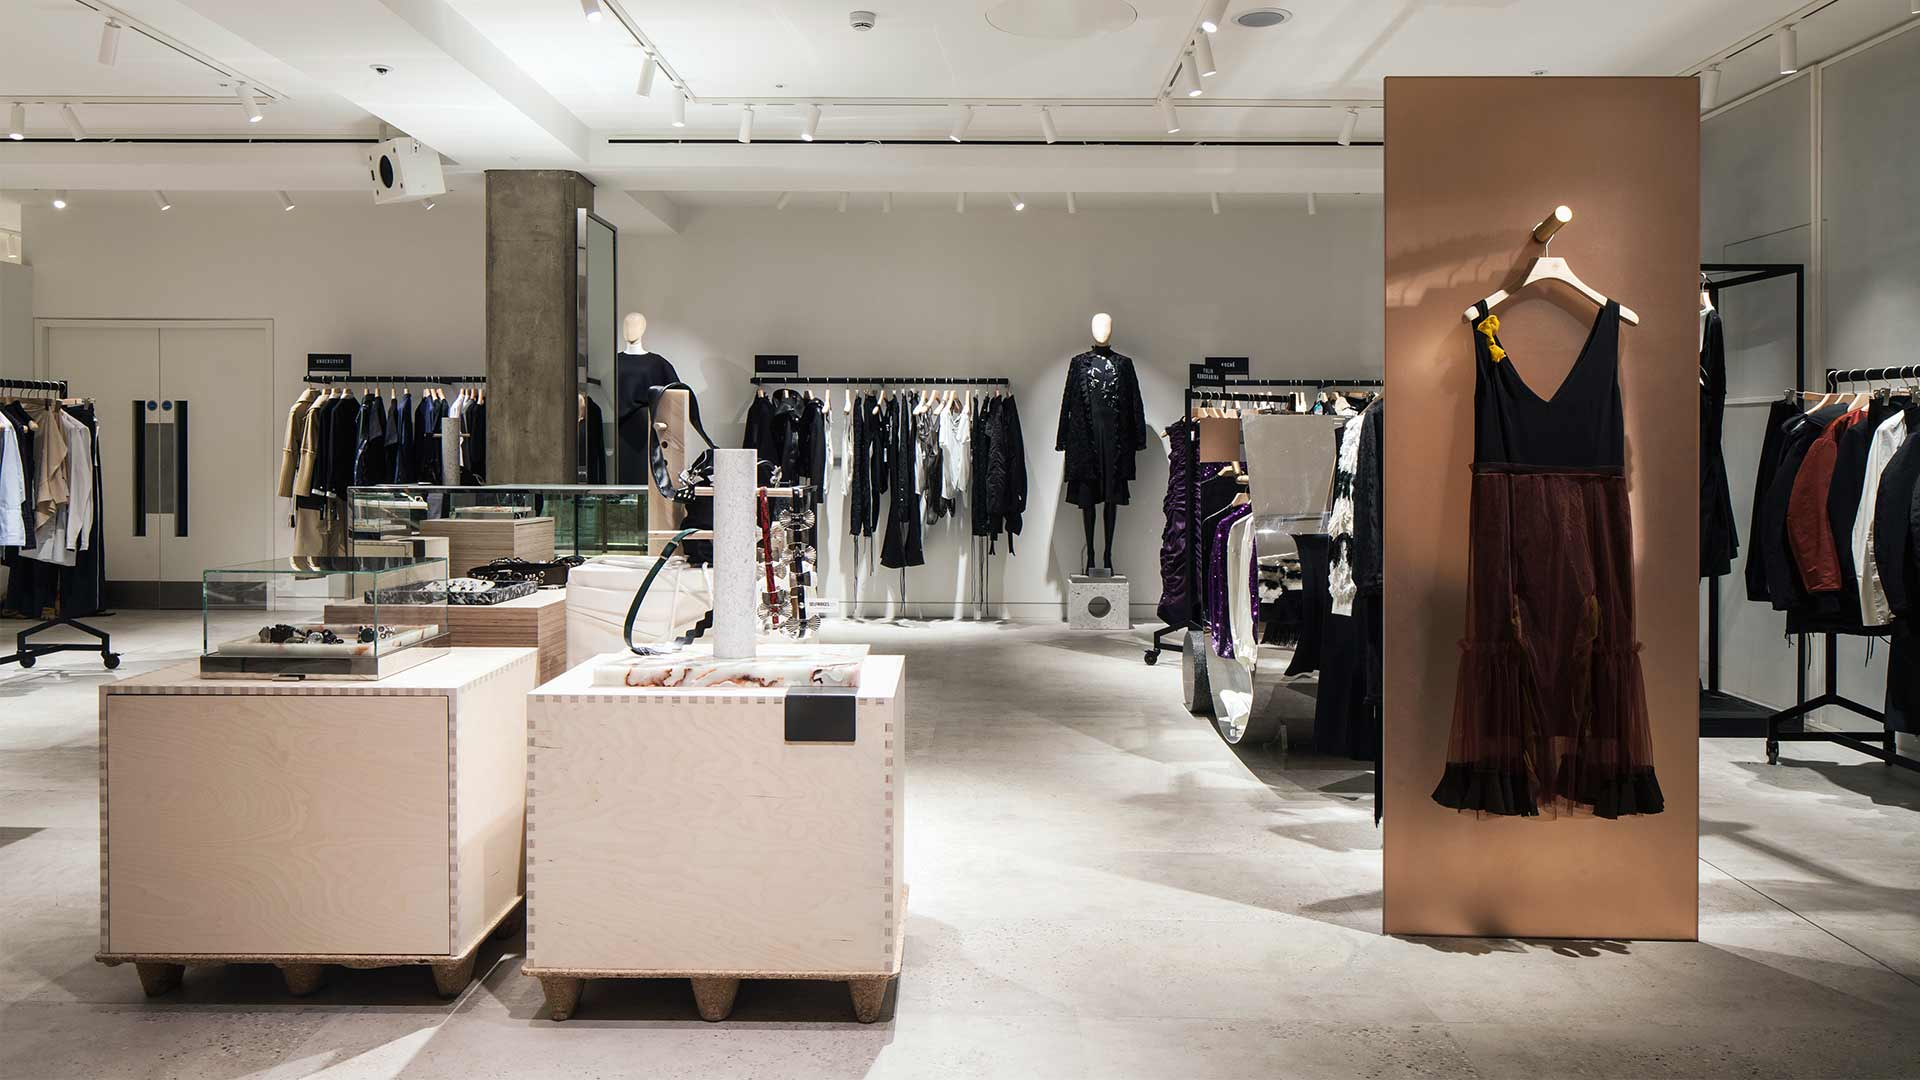 Luxury Department Store London Fashion Studio Architectural Lighting Designers Nulty